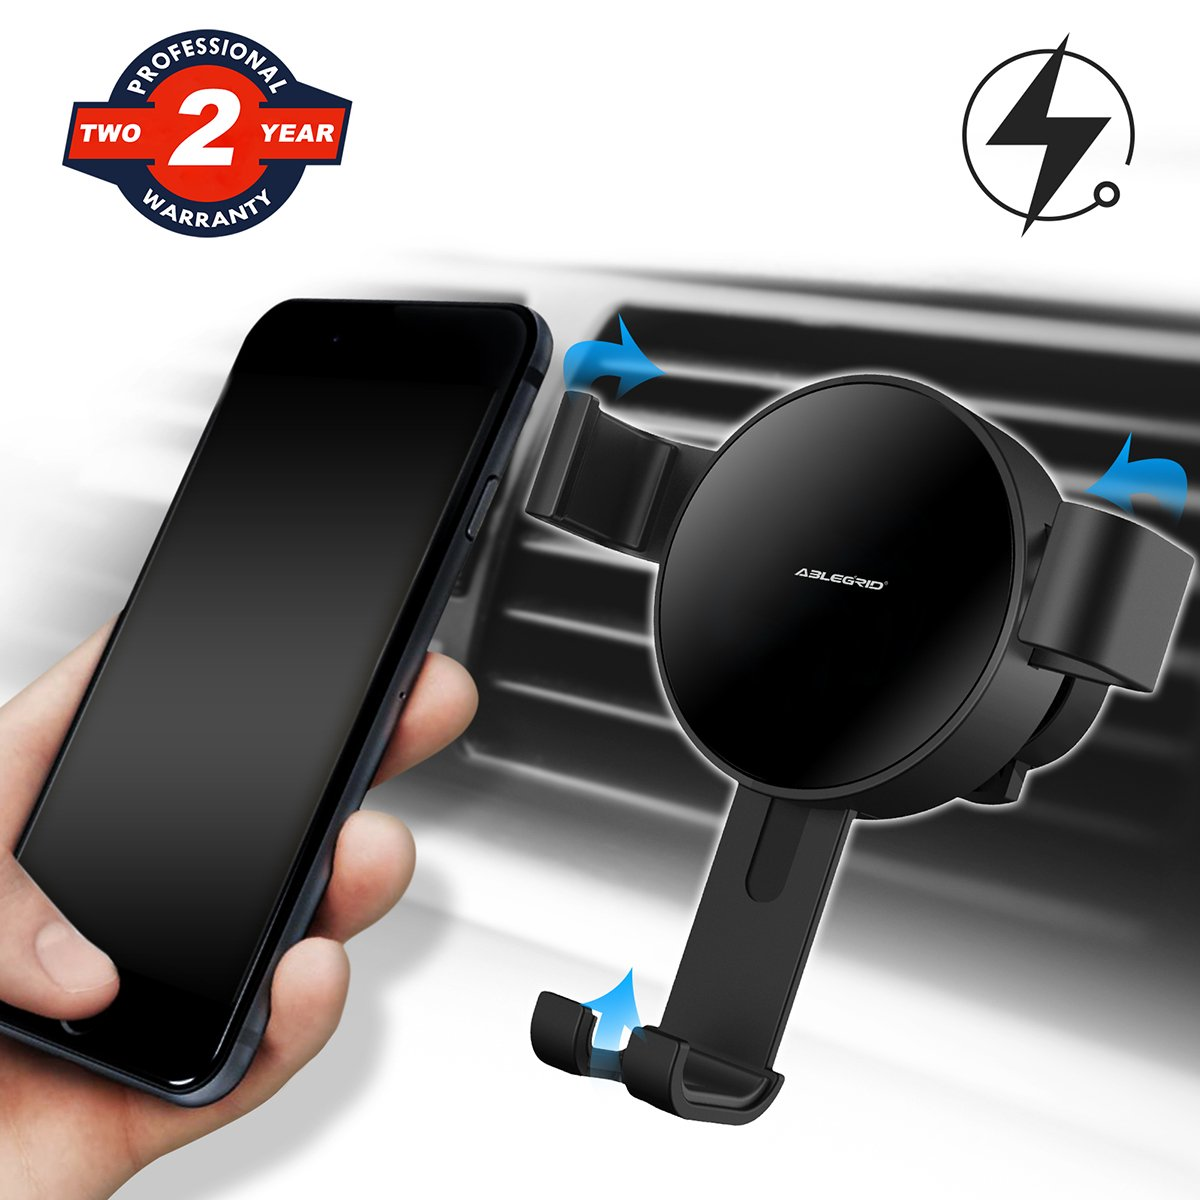 Wireless Car Charger, ABLEGRID Gravity Auto Lock Fast Charging Car Wireless Charger Car Mount For iPhone X/8/8 Plus, Samsung Galaxy NoteS9 8/S 8/S 8+/S 7/S 6 Edge+/Note 5 and Most Qi Enable Devices